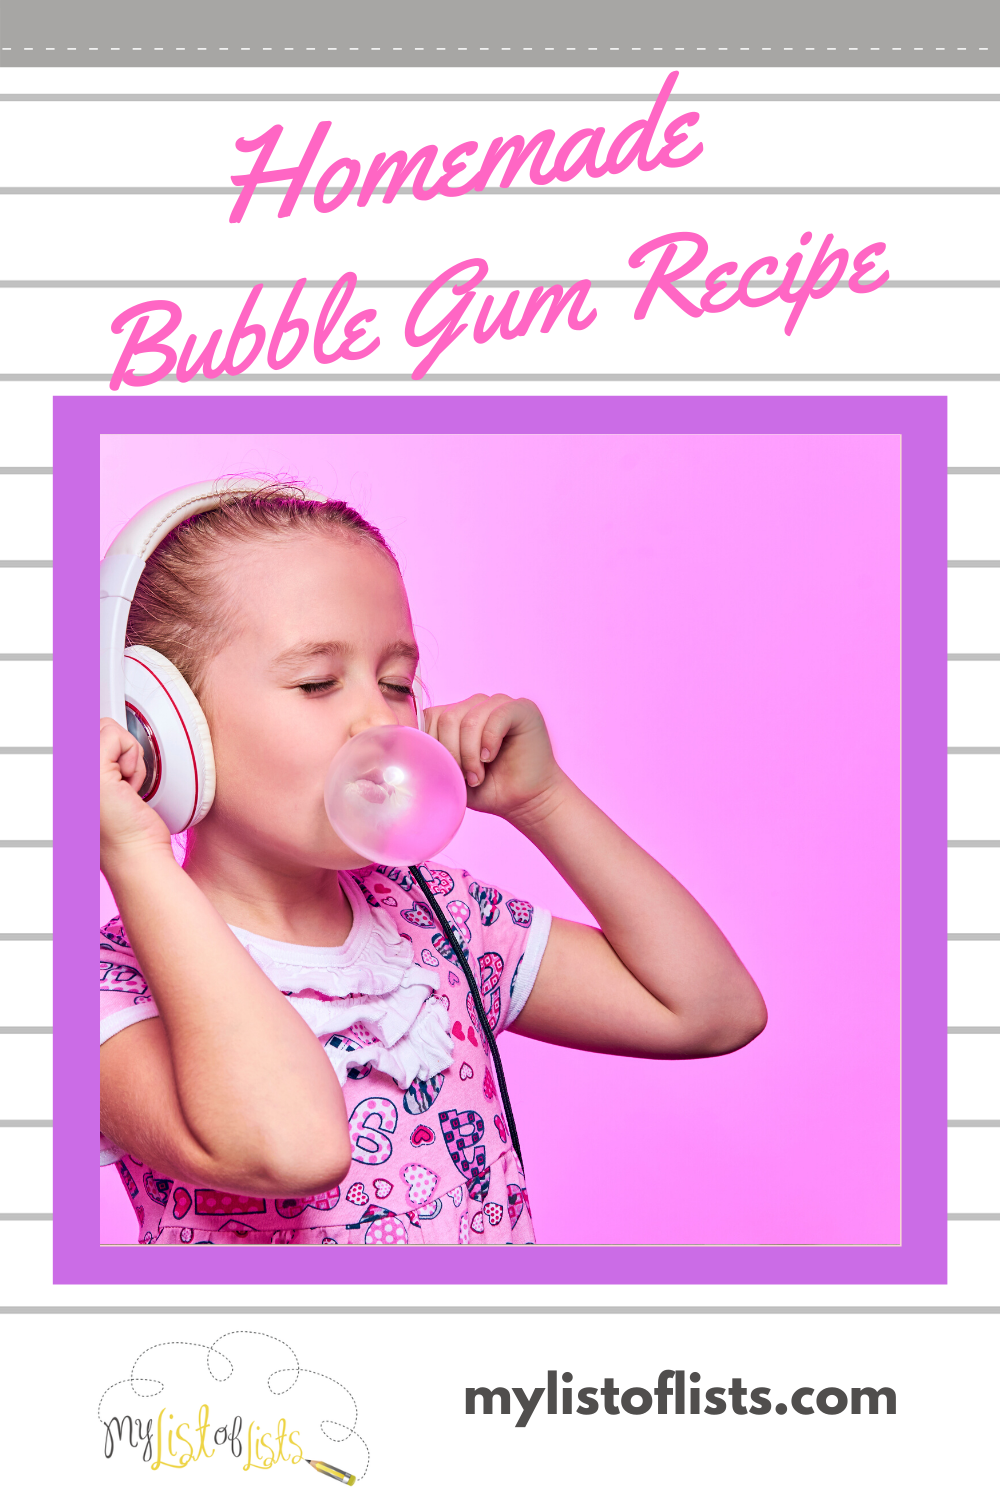 Forget Hubba Bubba ! If you thought that stuff is good, you will love this recipe for homemade bubble gum. Not only does it taste amazing, it is great for blowing huge bubbles. #homemadebubblegum #chewinggumDIY #homemaderecipes #mylistoflistsblog